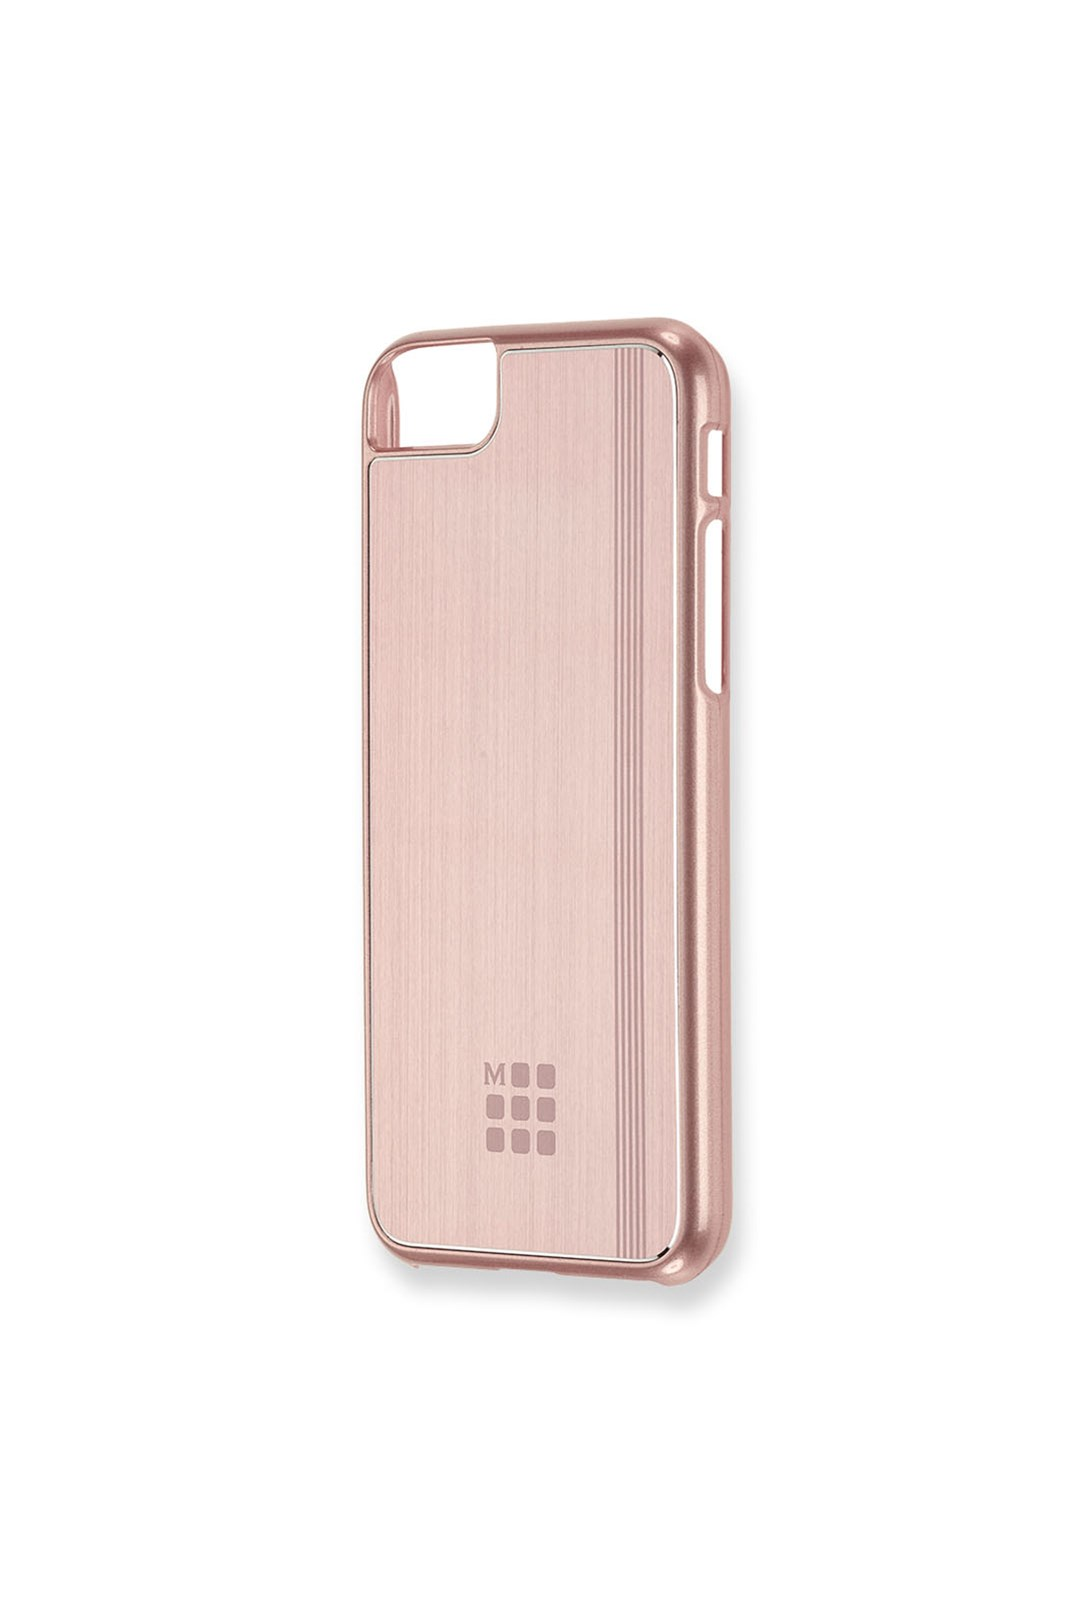 Moleskine - Aluminium iPhone Hard Case - 6/7/8 - Rose Gold